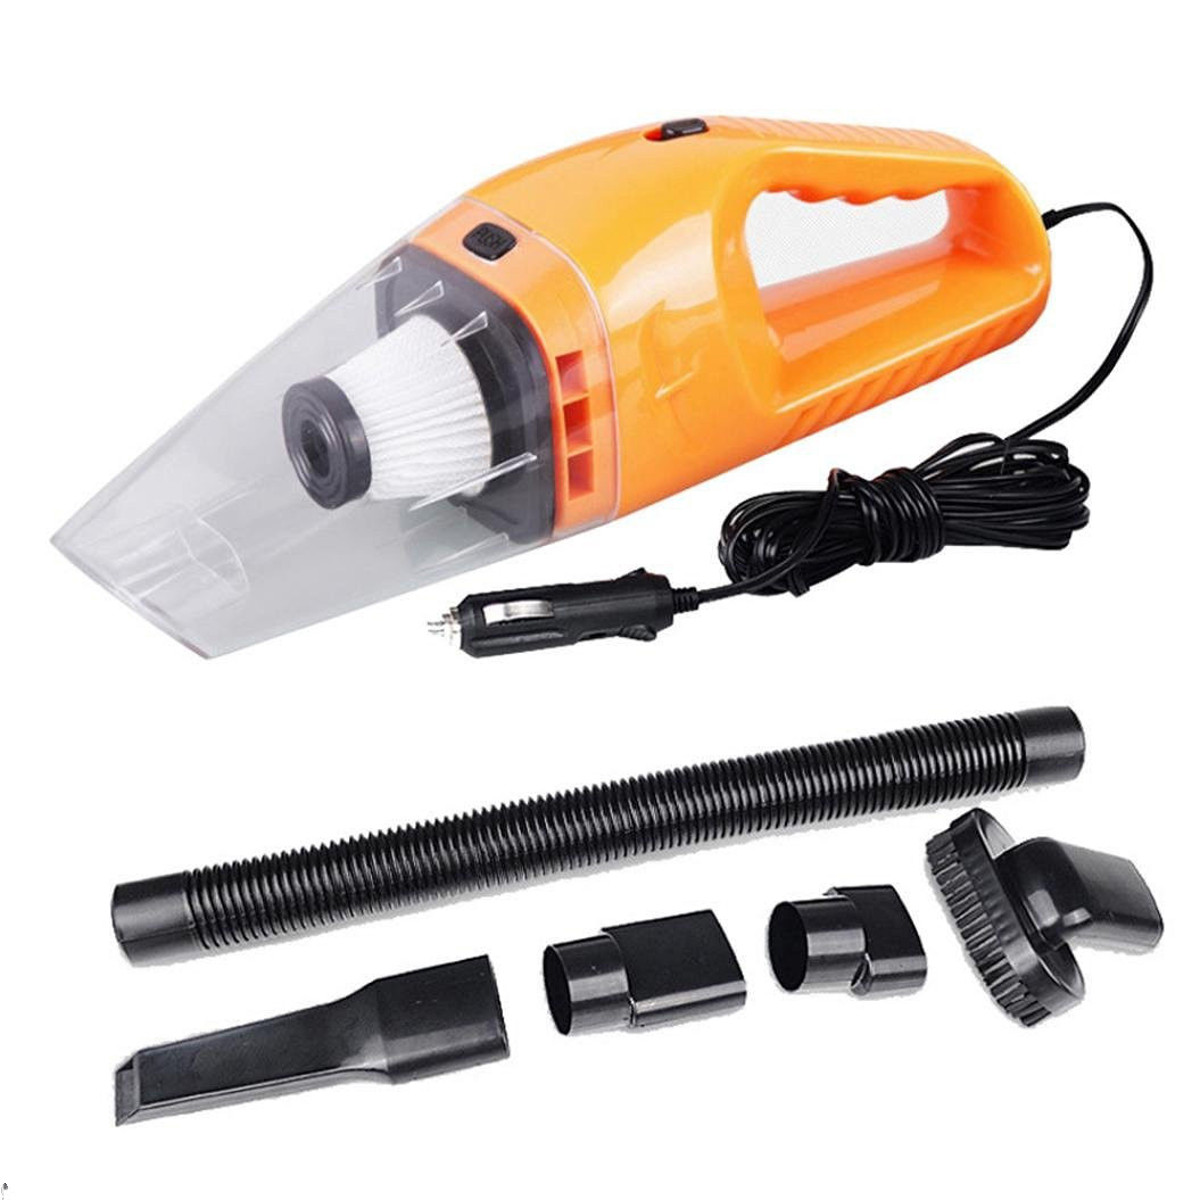 12v 120w mini handheld vacuum cleaner useful in car. Black Bedroom Furniture Sets. Home Design Ideas